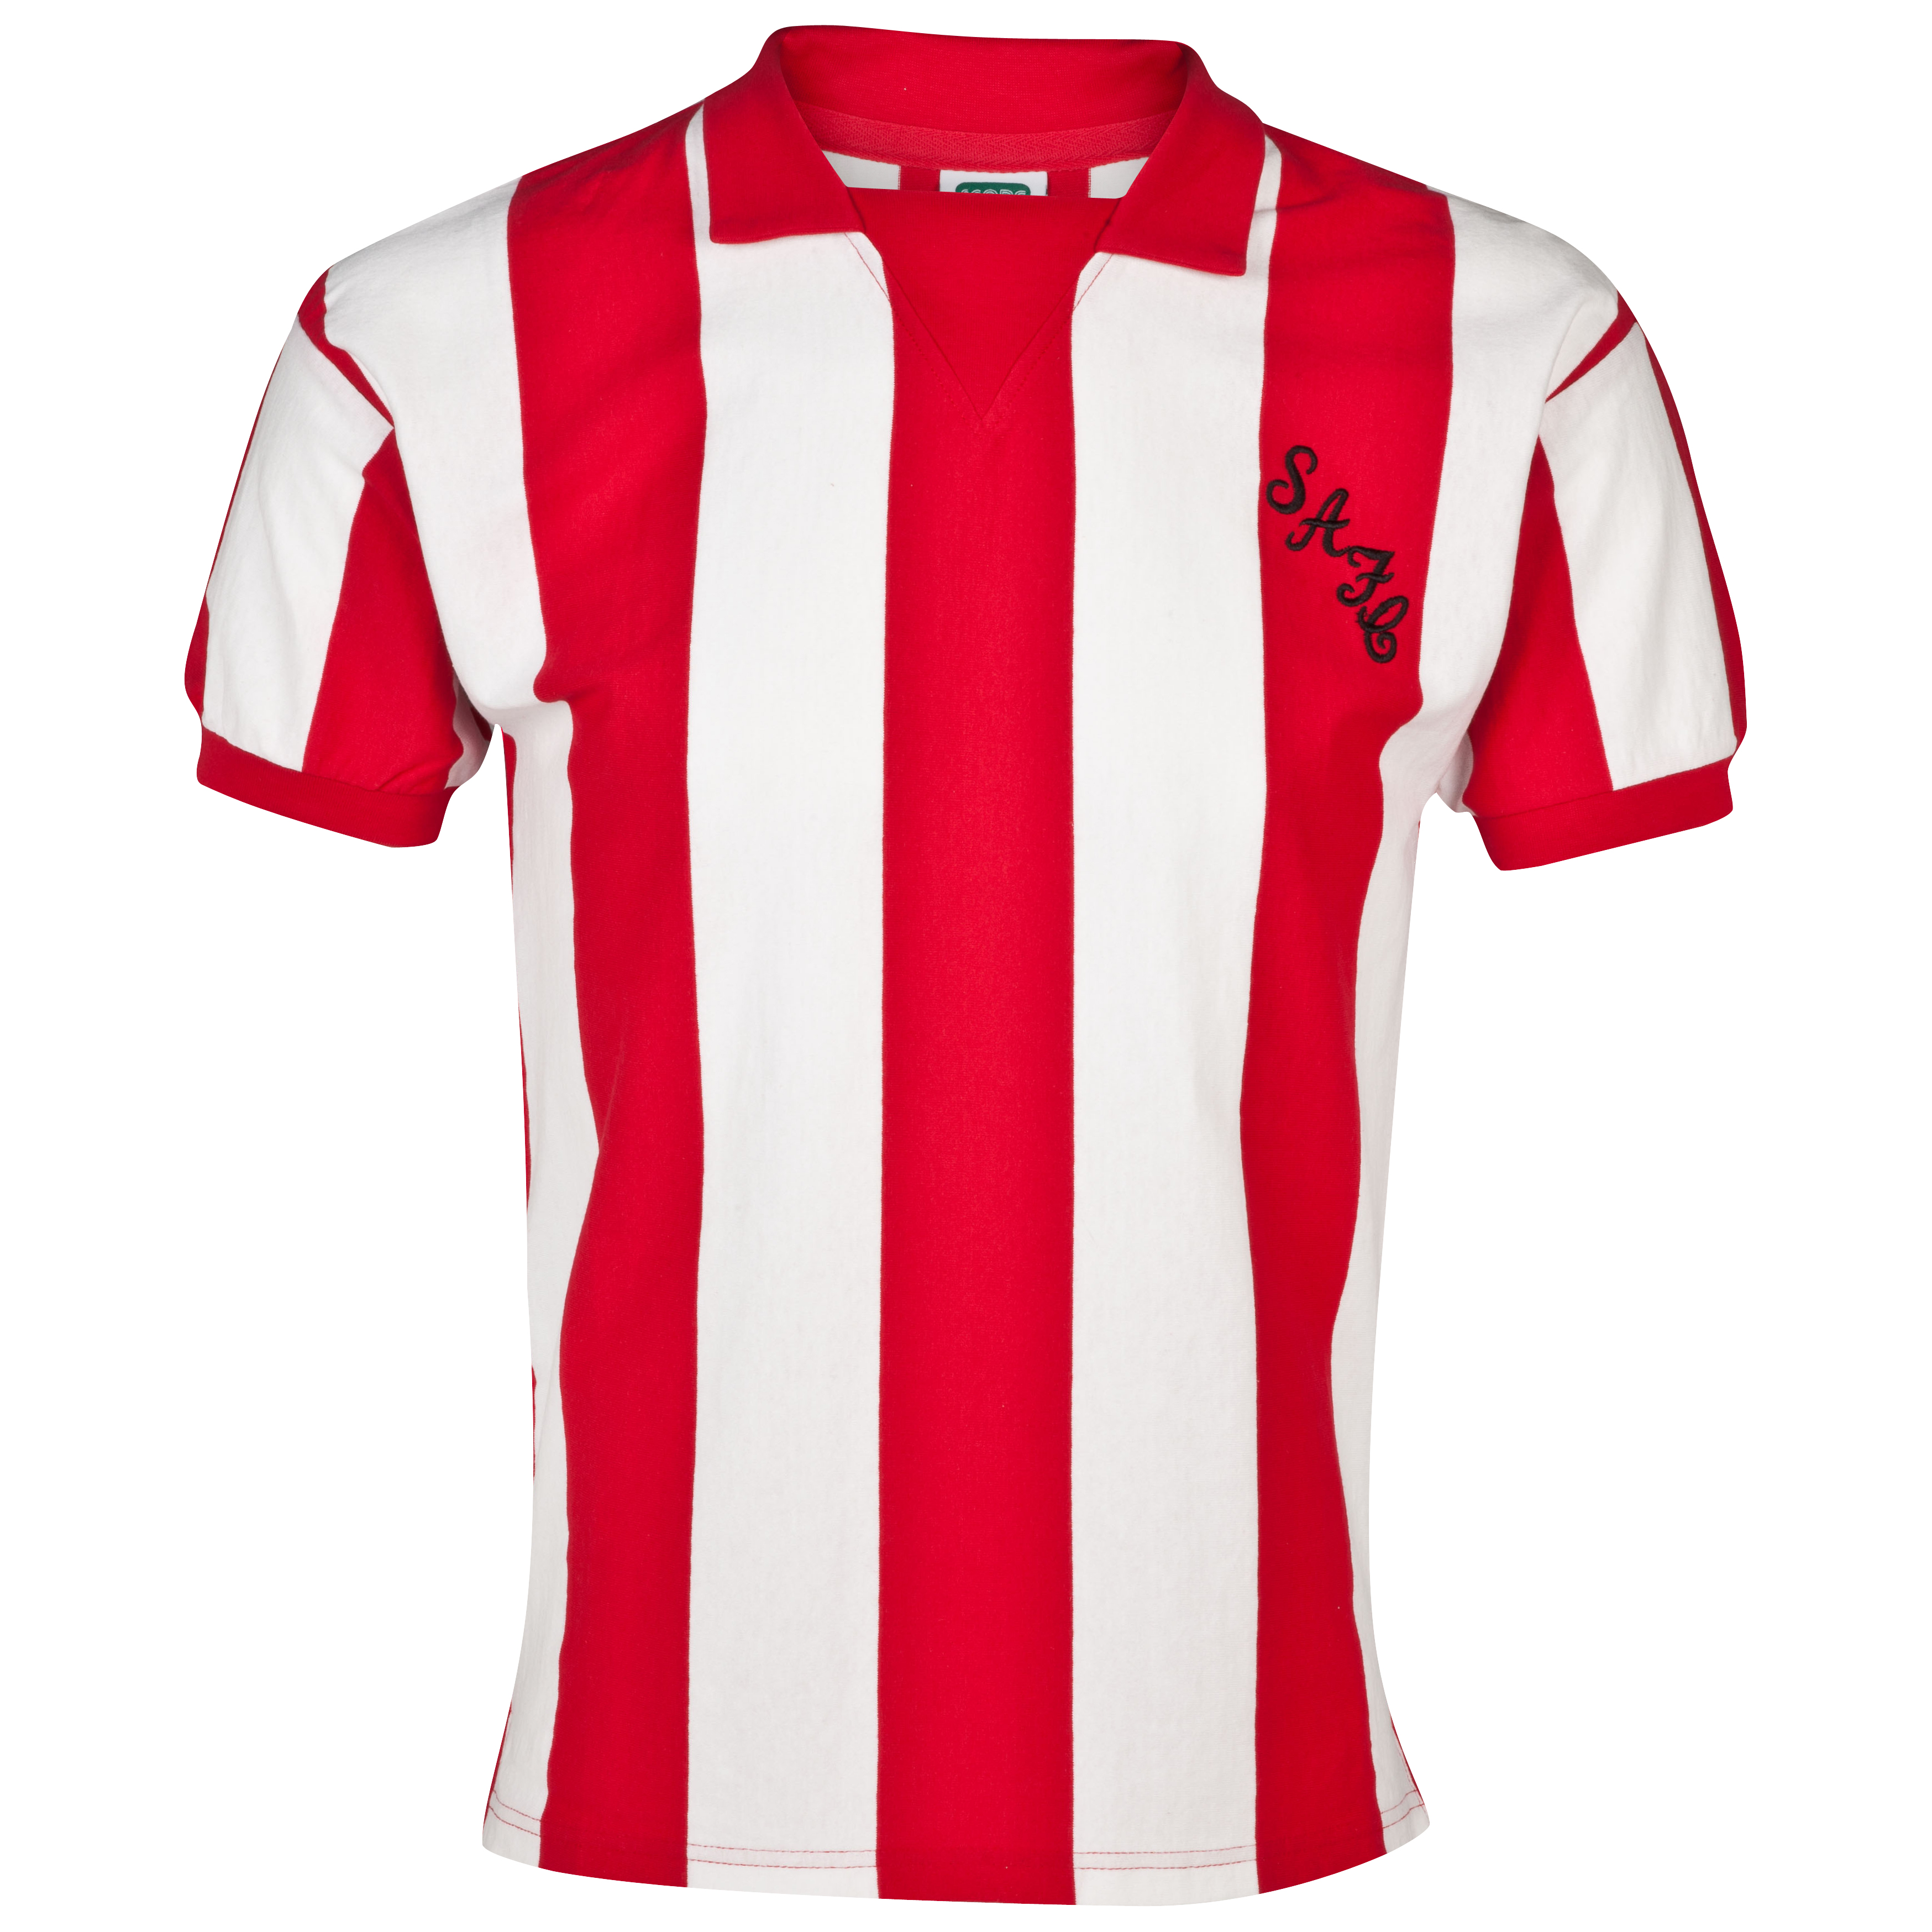 Sunderland 1973 Retro Home Shirt